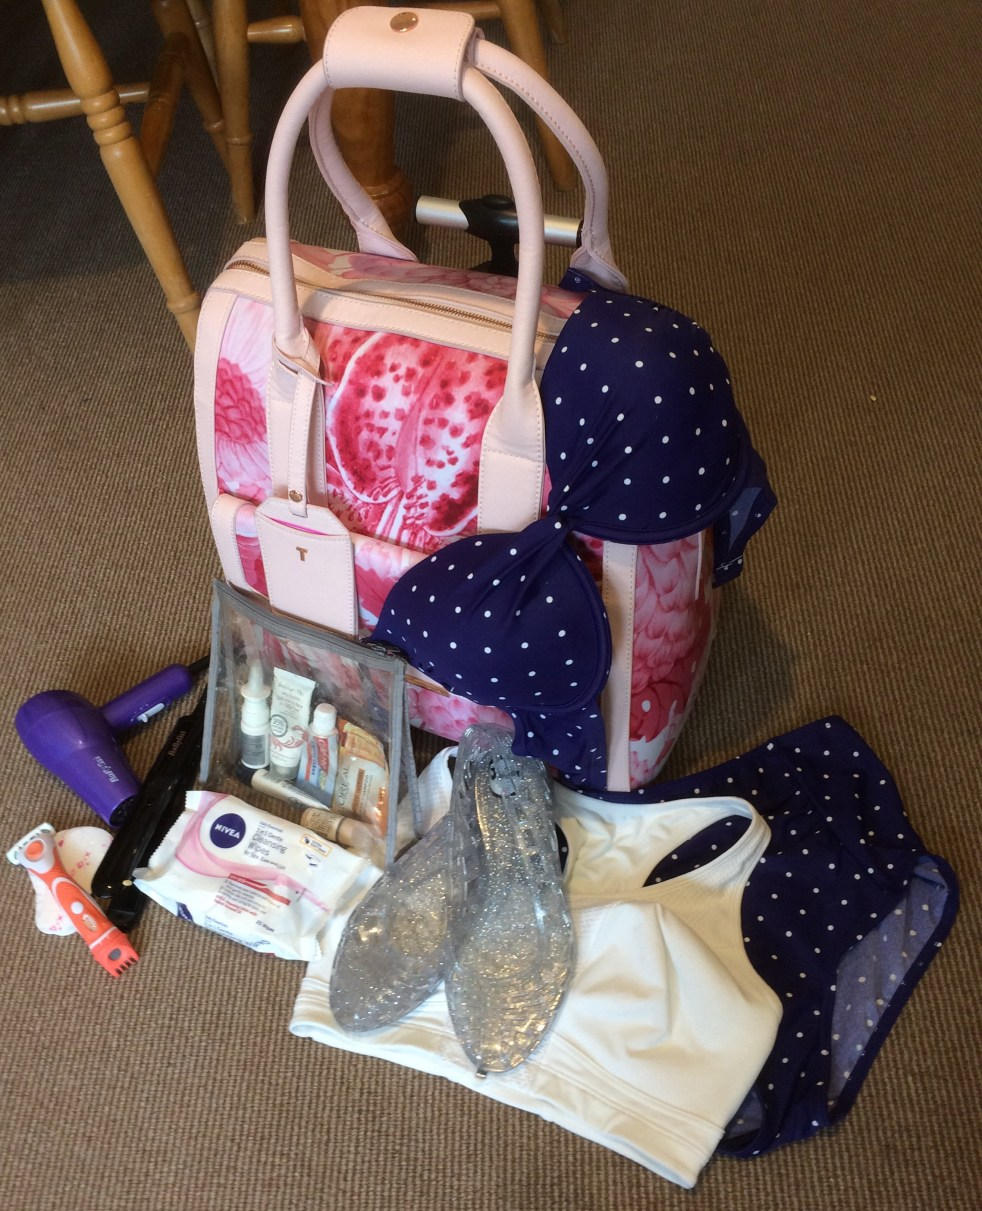 photo of a pink travel bag with blue polka bikini, white sports bra, clear make up bag, small purple hairdryer, wet wipes and razor